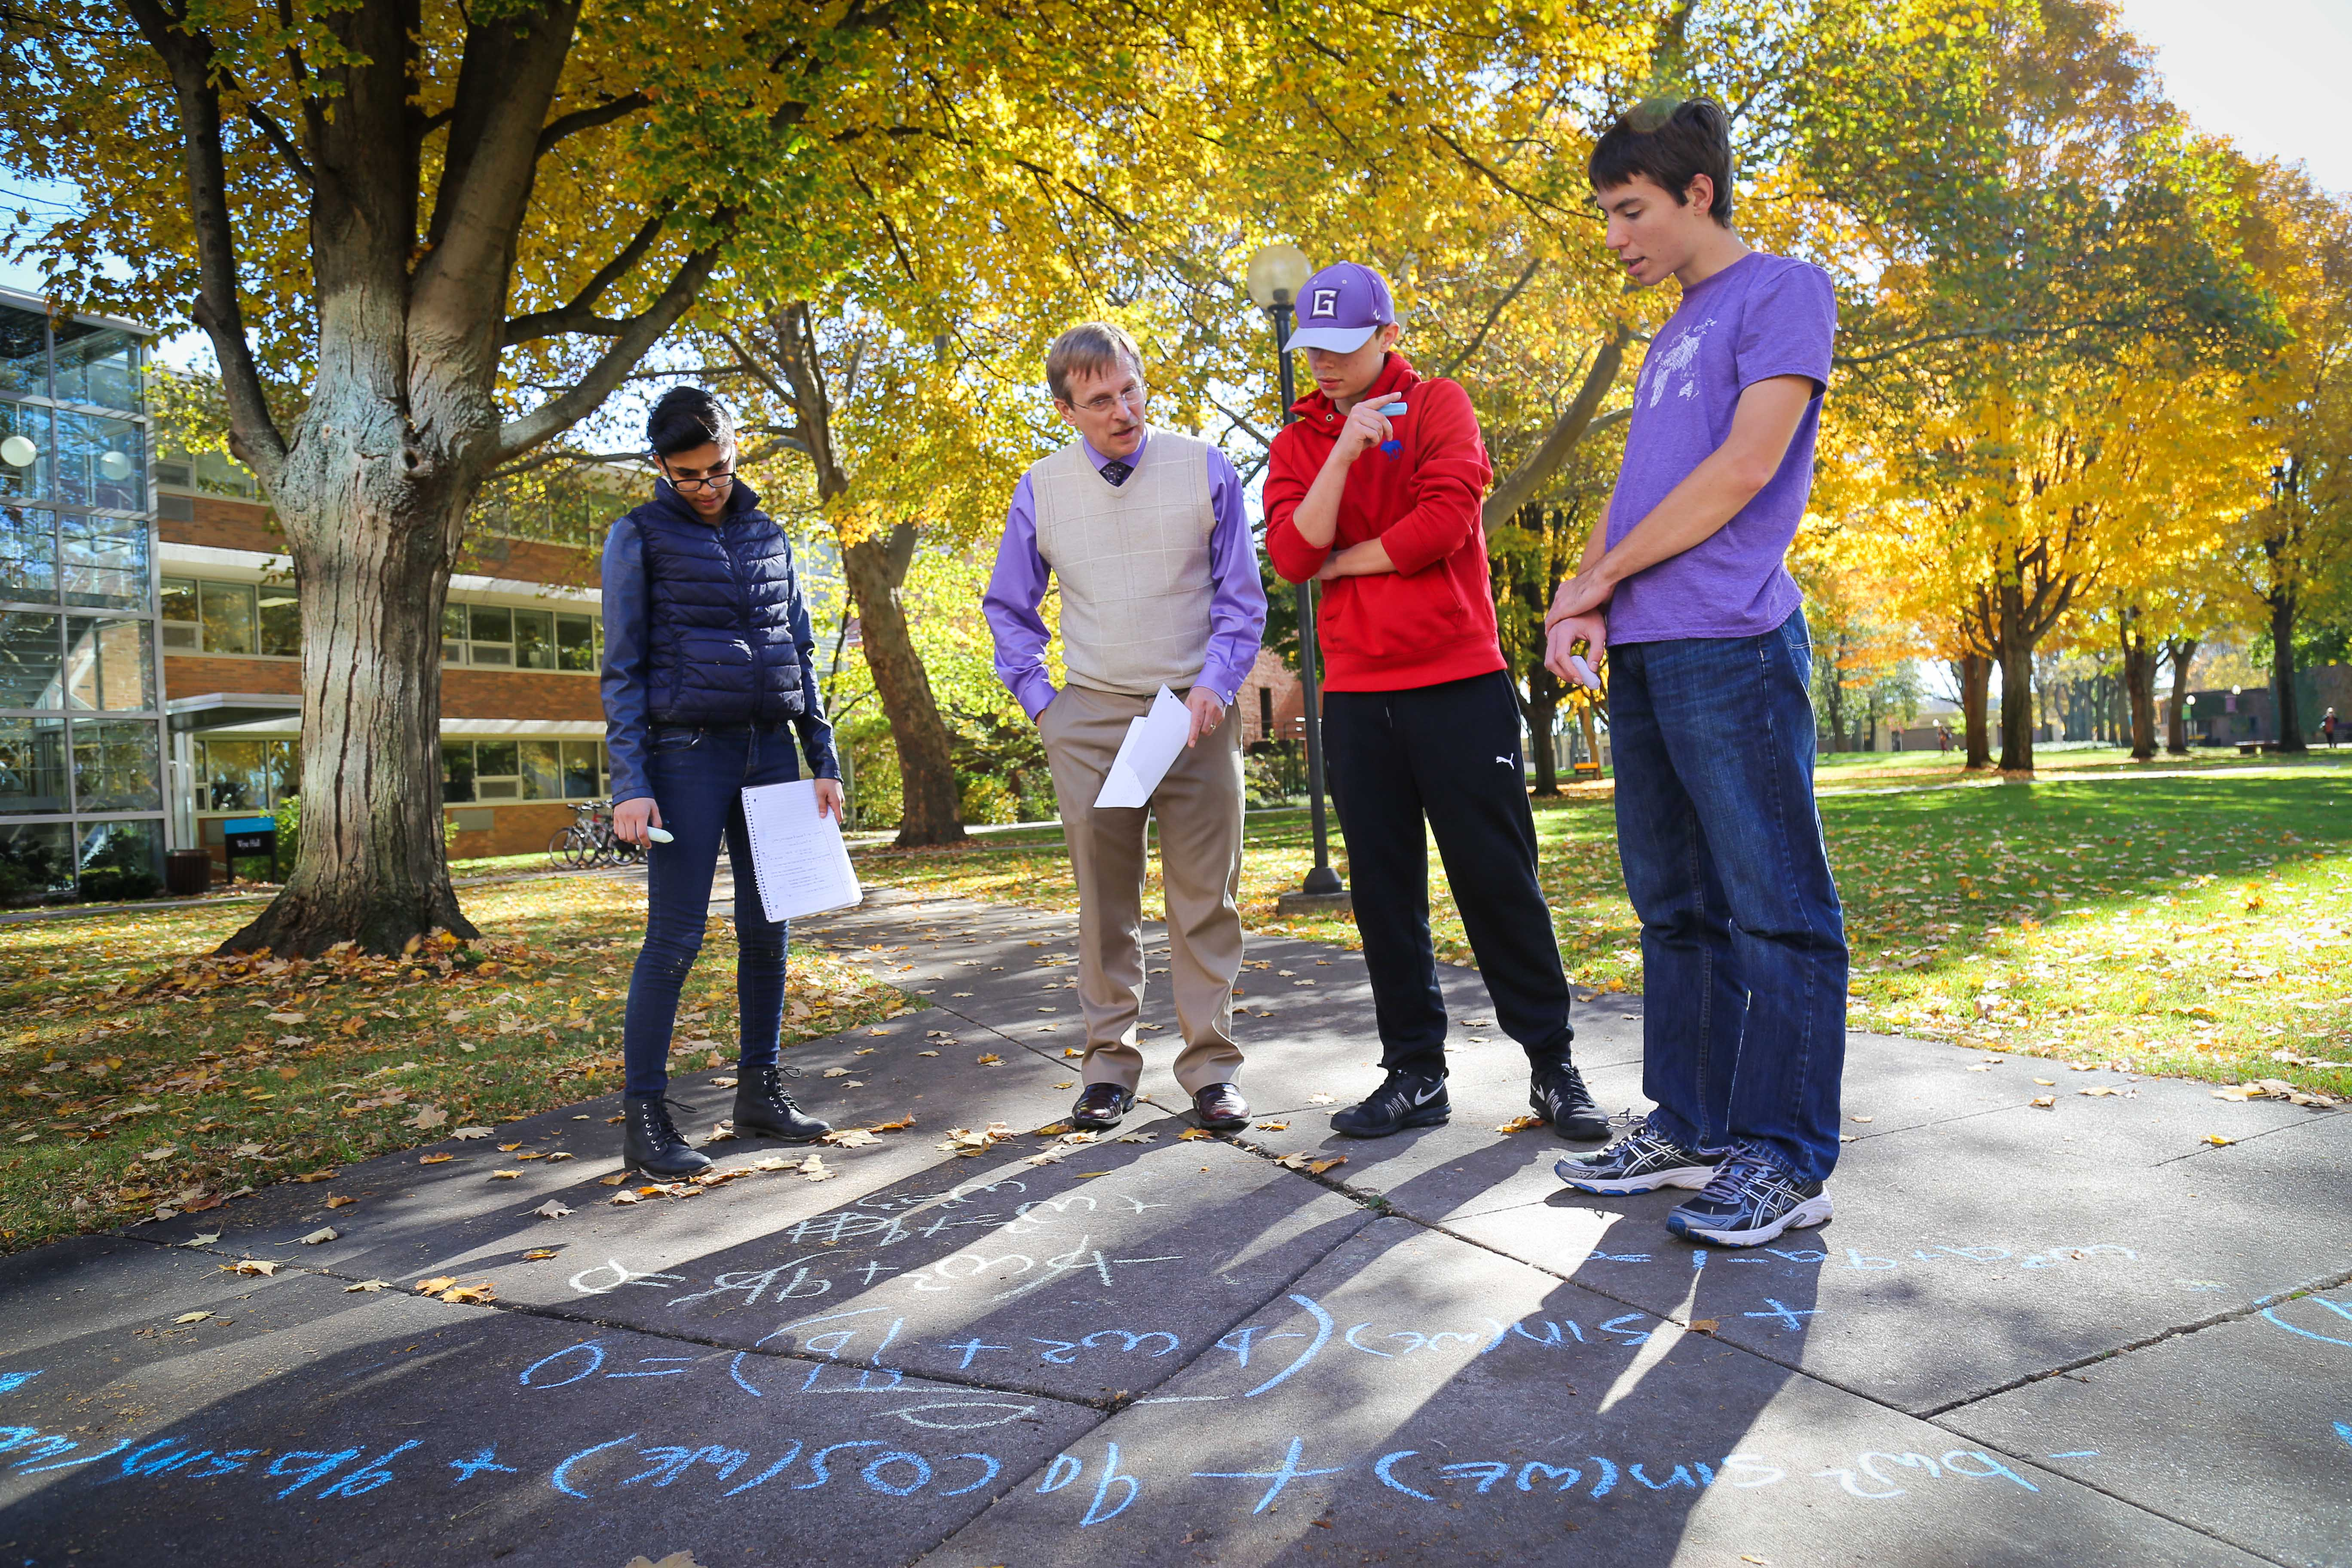 Math students with professor looking at equations on sidewalks